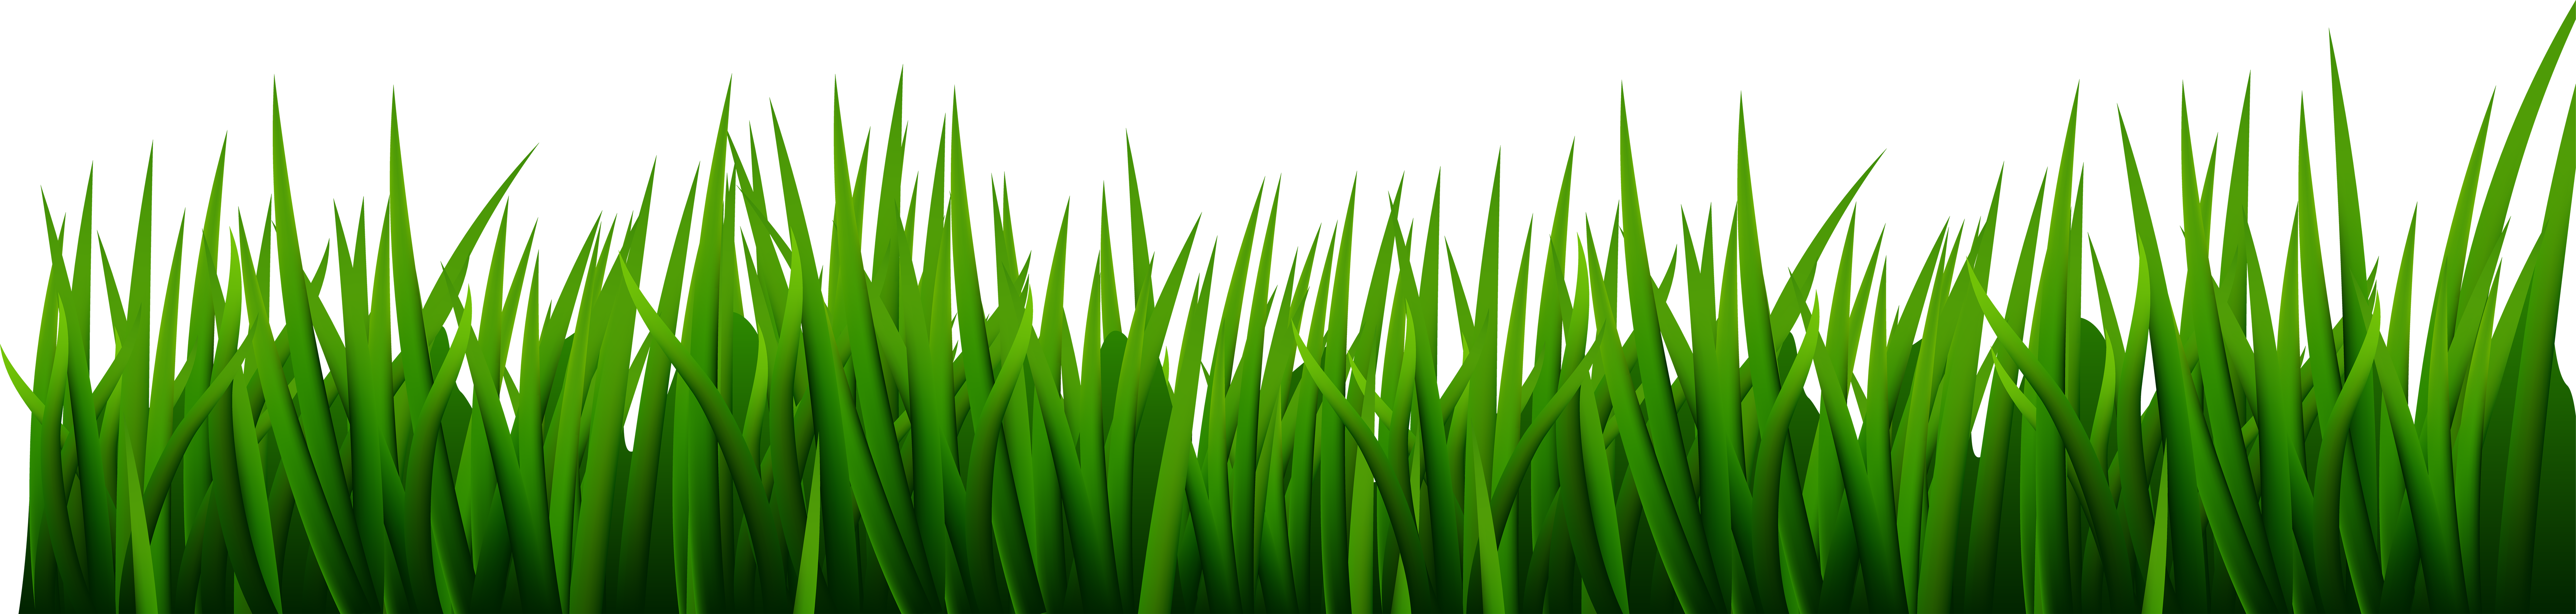 Forage Png - Clipart grass forage, Clipart grass forage Transparent FREE for ...